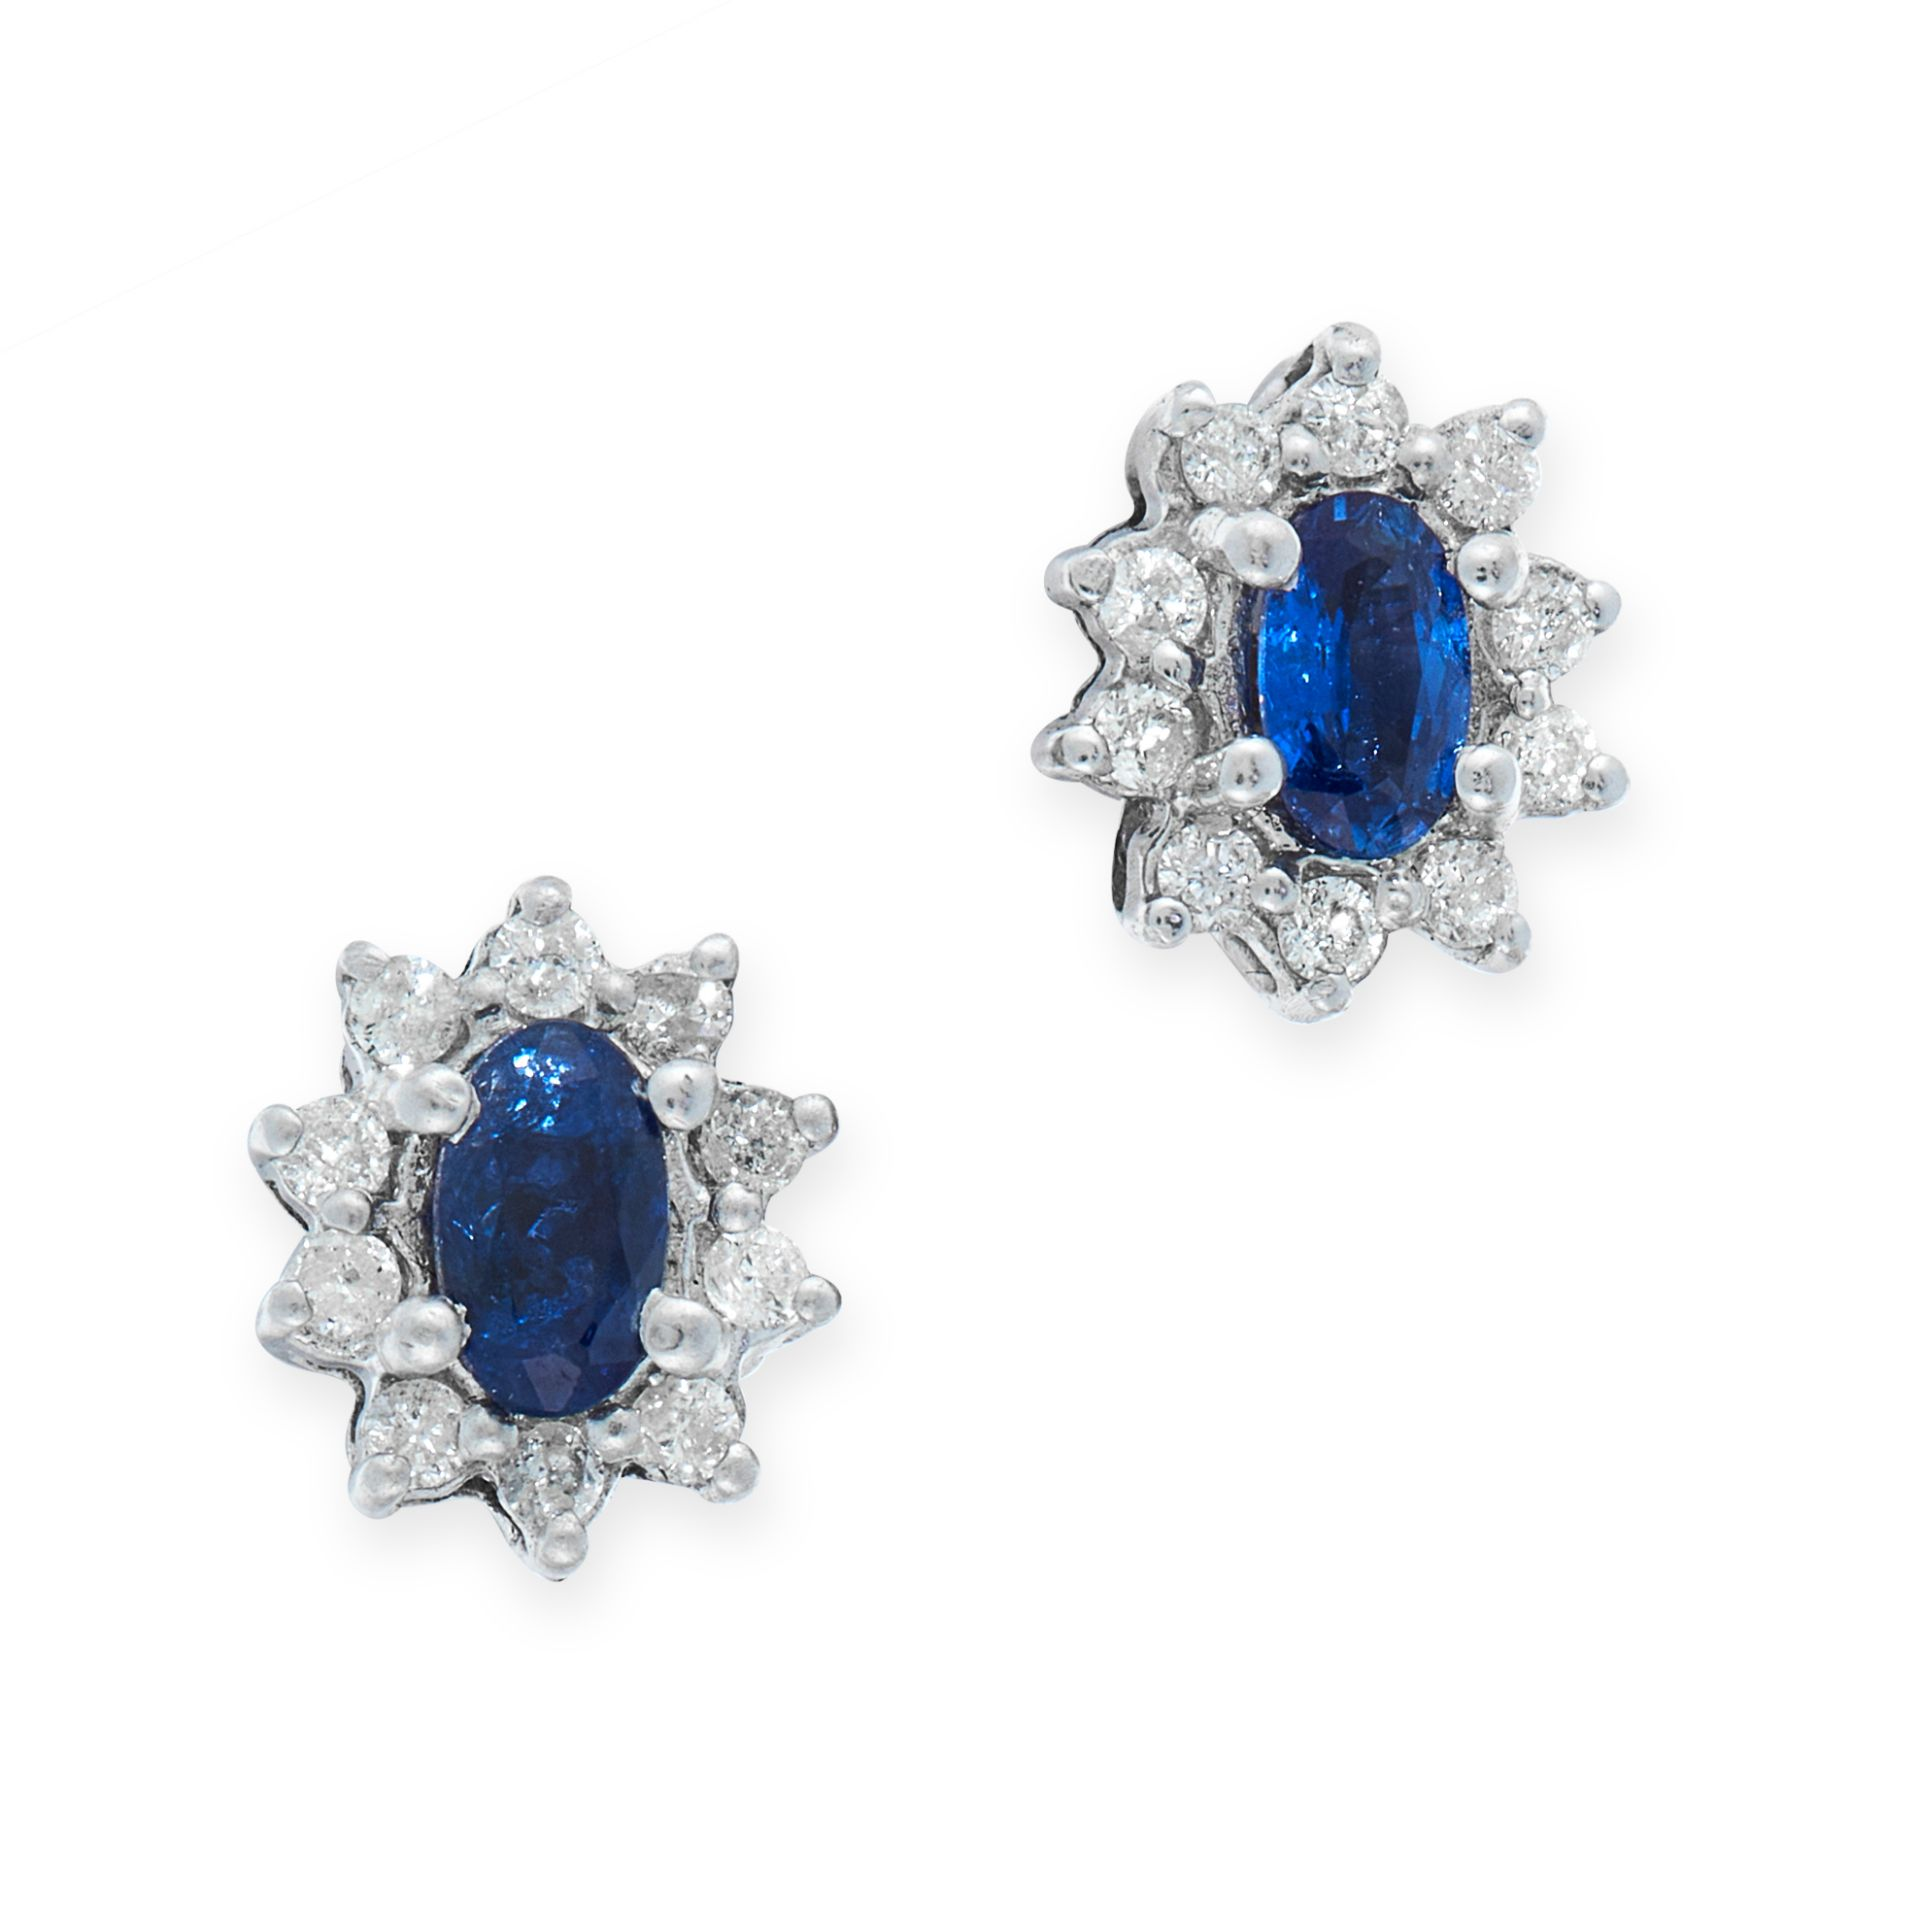 A PAIR OF SAPPHIRE AND DIAMOND STUD EARRINGS in 18ct white gold, each set with an oval cut blue